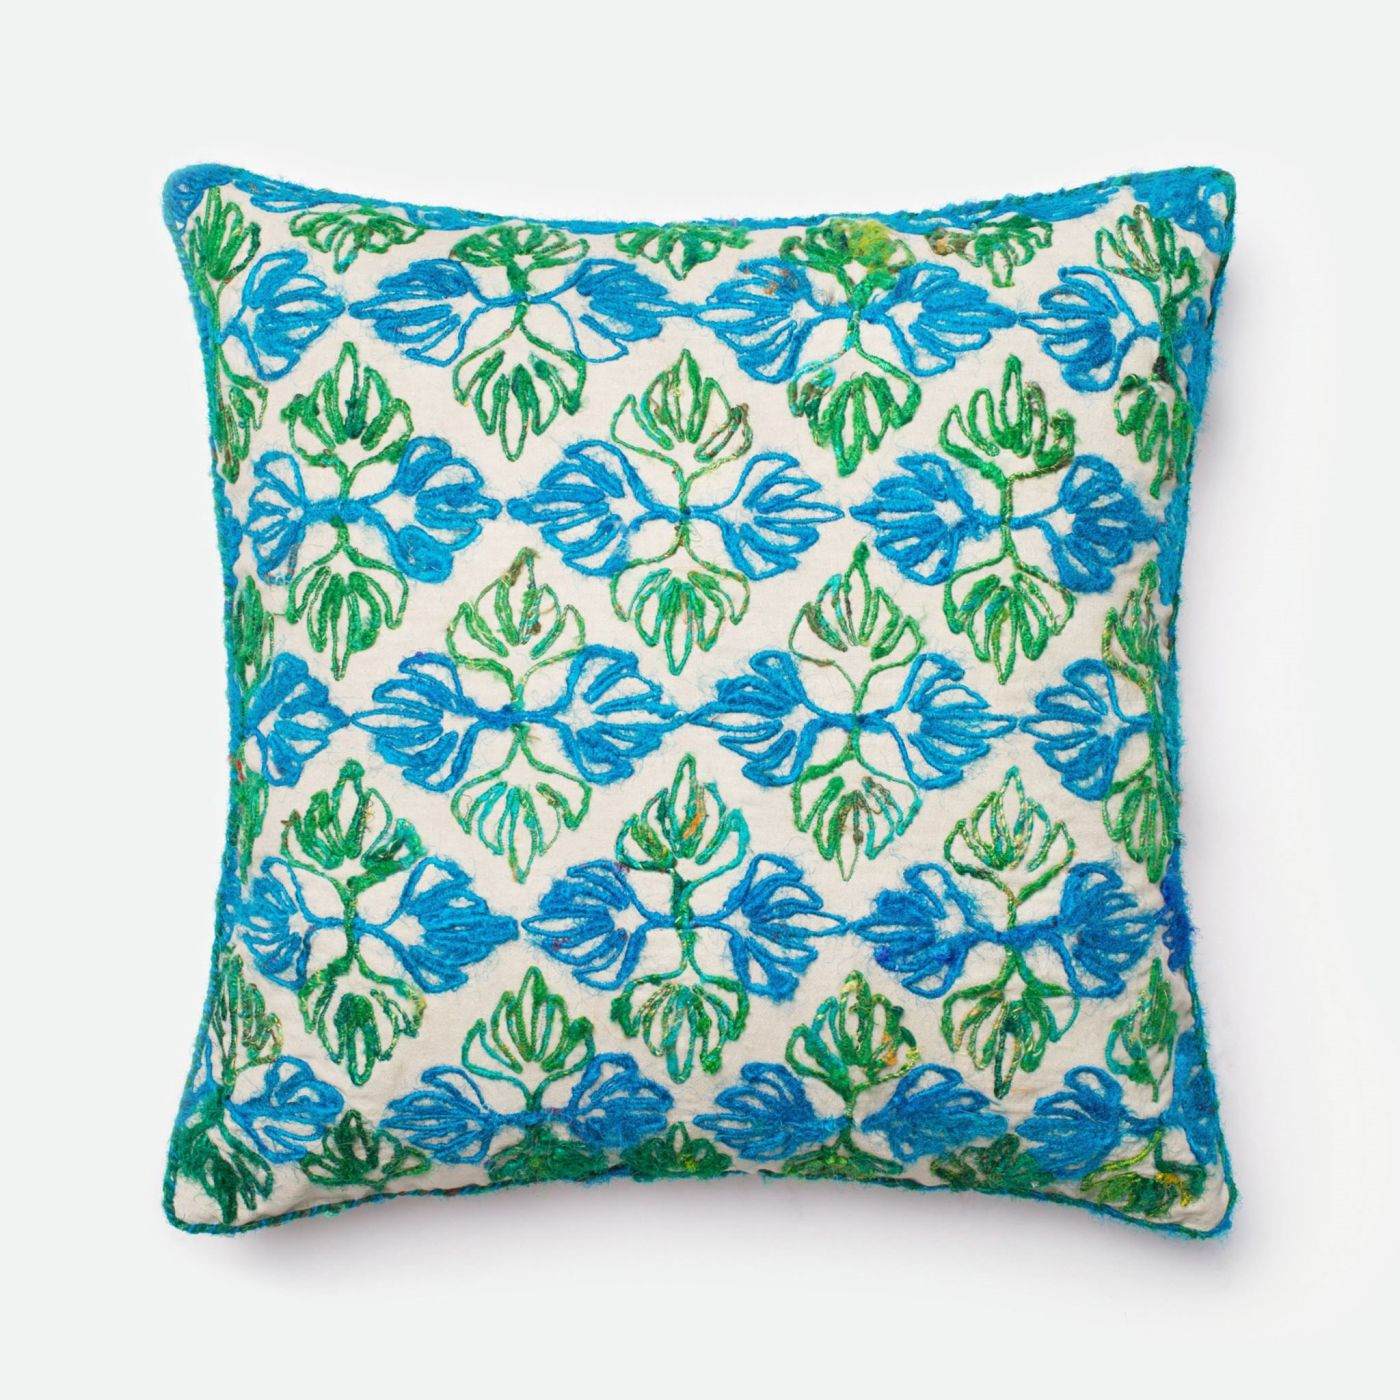 Throw Pillow Warehouse : Loloi Rugs Loloi Green / Blue Decorative Throw Pillow (P0231) DSETP0231GRBBPIL3. Only $69.00 at ...